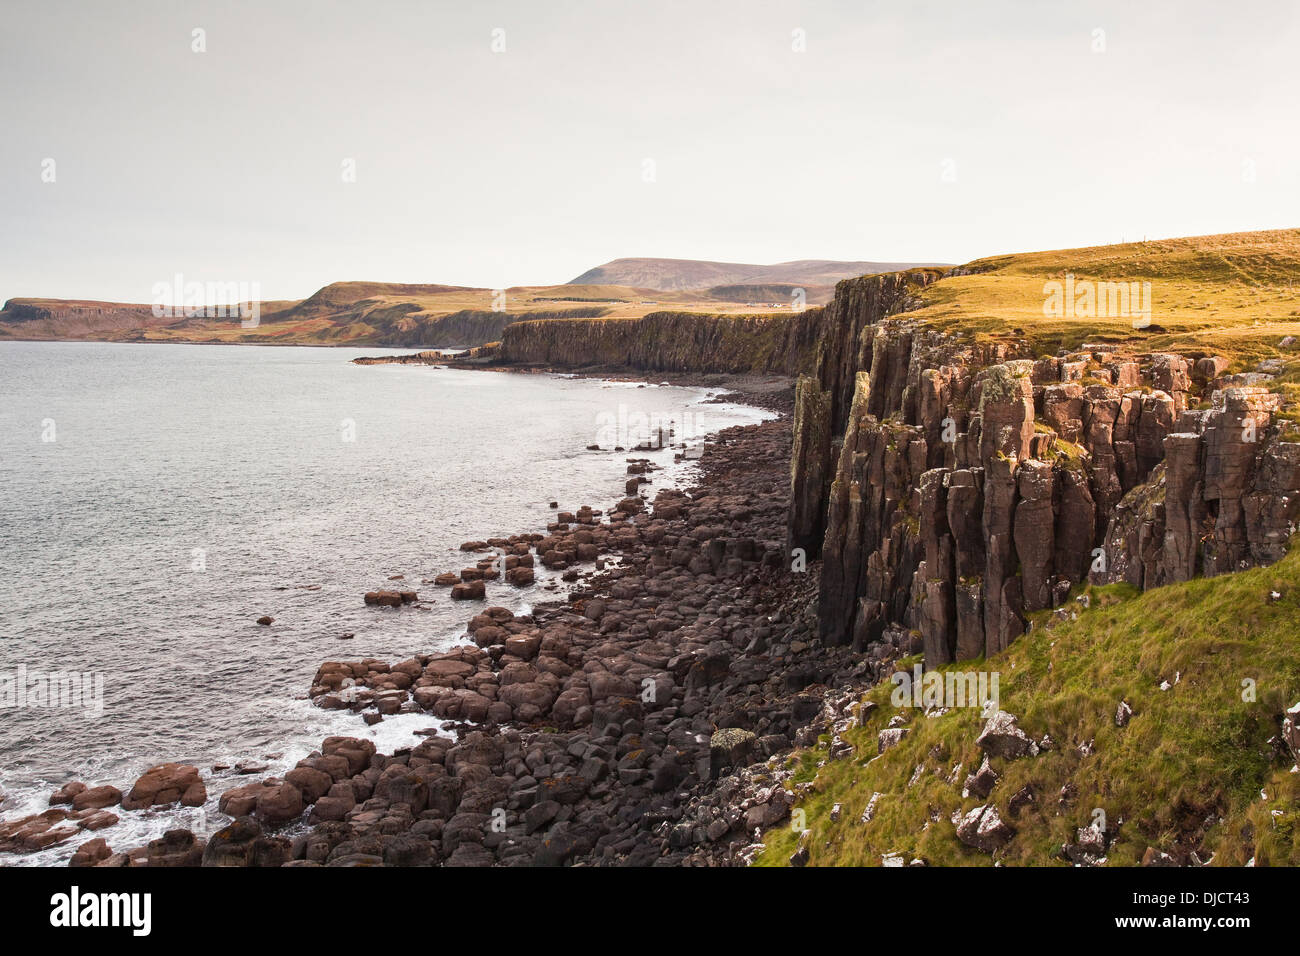 Basalt rocks formations on the north-west coast of the Isle of Skye. - Stock Image